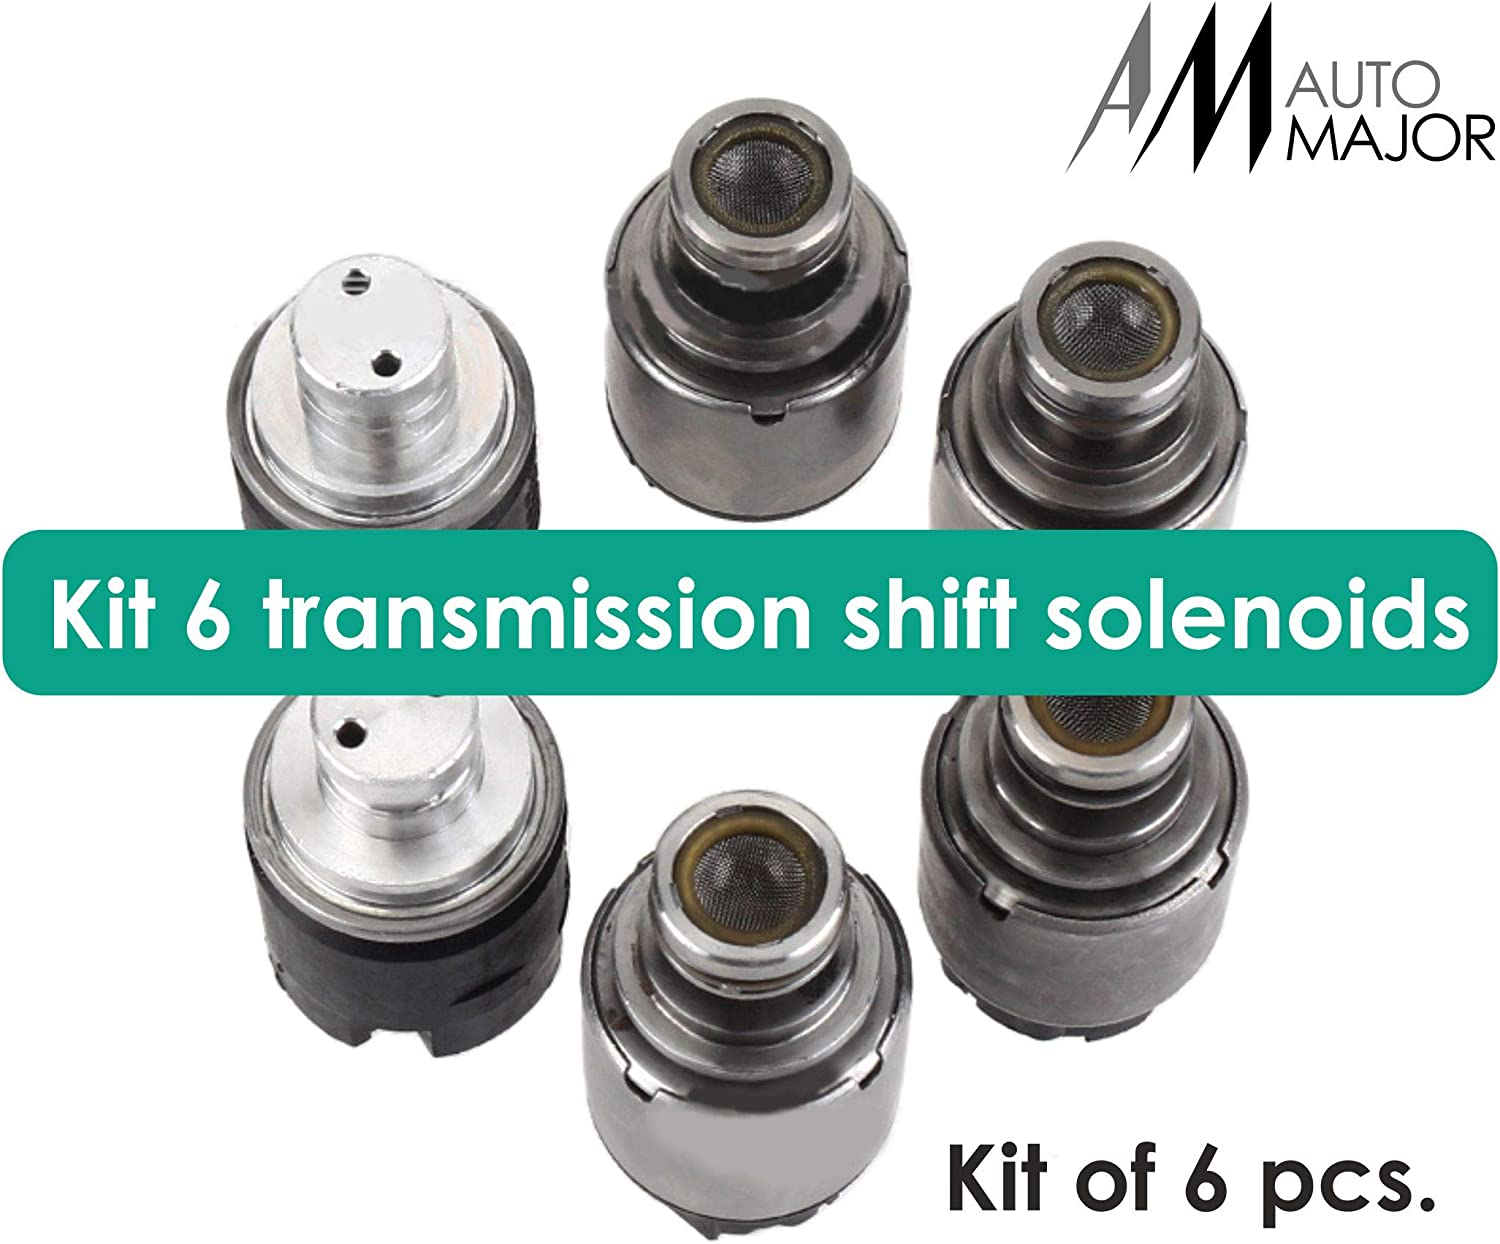 Suzuki Automajor Transmission Shift Solenoid Valve Perfectly Fits for Daewoo Buick OEM Part for 4HP16 ZF4HP16 Transmission Chevy Kit of 6pcs Solenoids with Anti-Corrosion Resistance